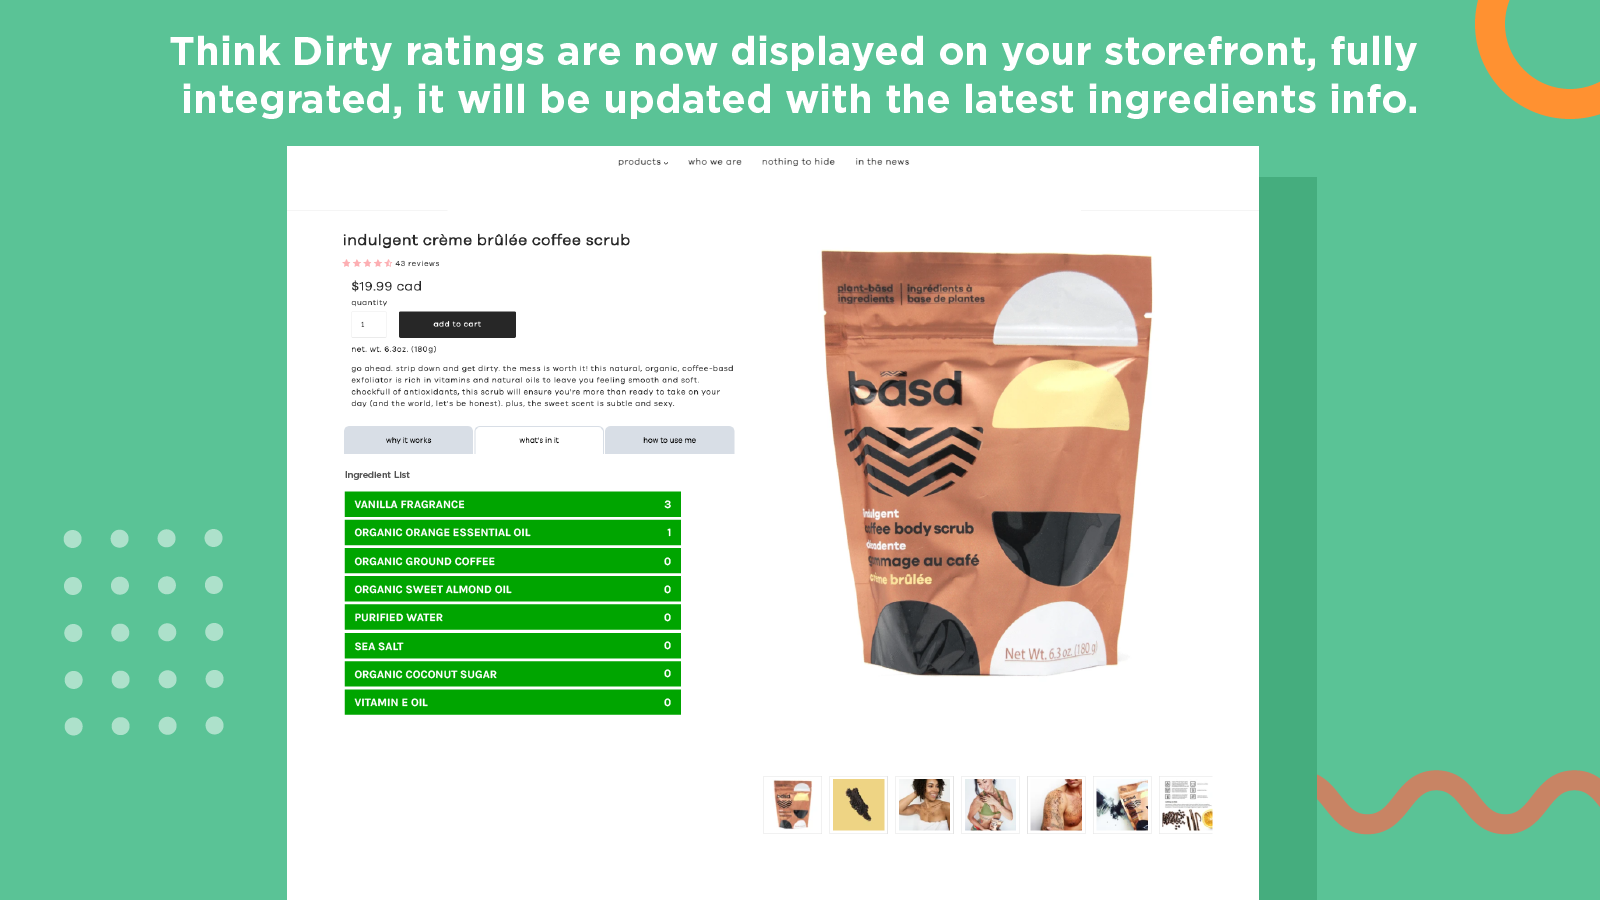 Think Dirty ratings are now displayed on your storefront